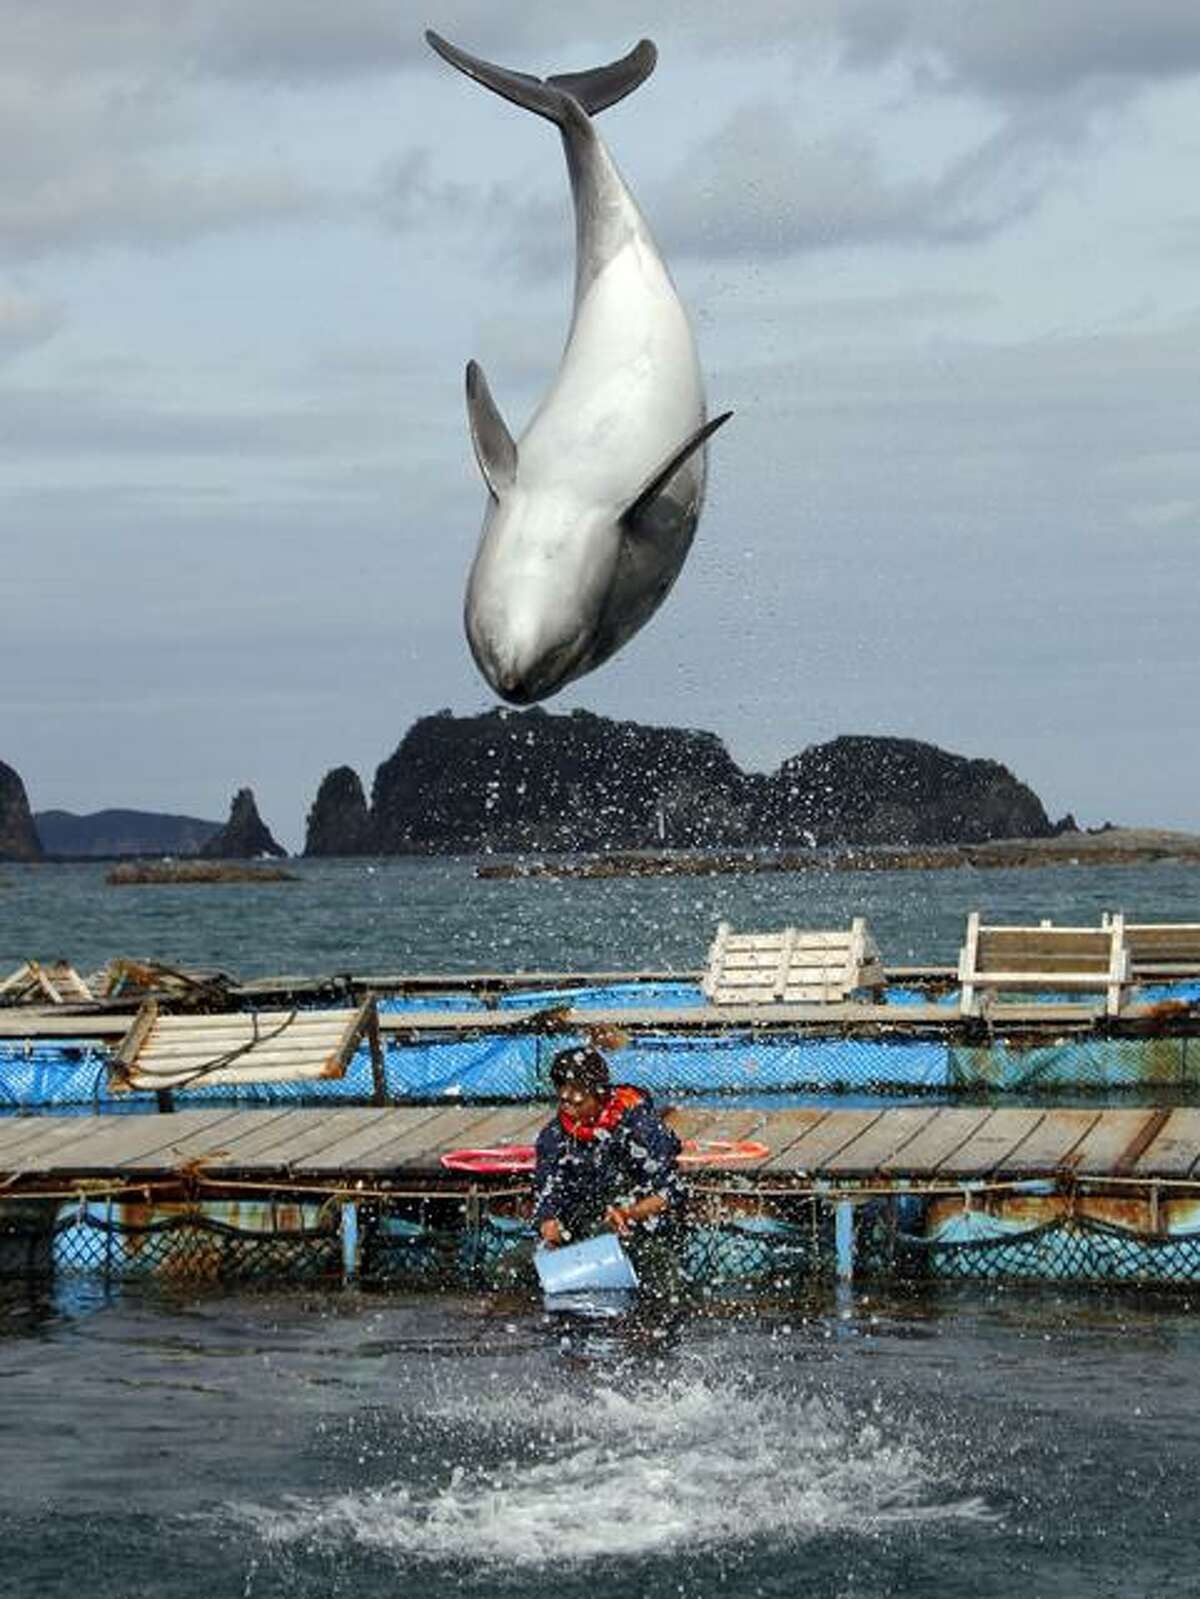 In this March 8, 2010, file photo, a dolphin demonstrates a flip at a dolphin pool in Taiji, southwestern Japan, where visitors can play with the animals. Fifty-five journalists, academics and film directors in Japan condemned Tuesday, June 8, 2010, intimidation and threats that led movie theaters to cancel screenings of